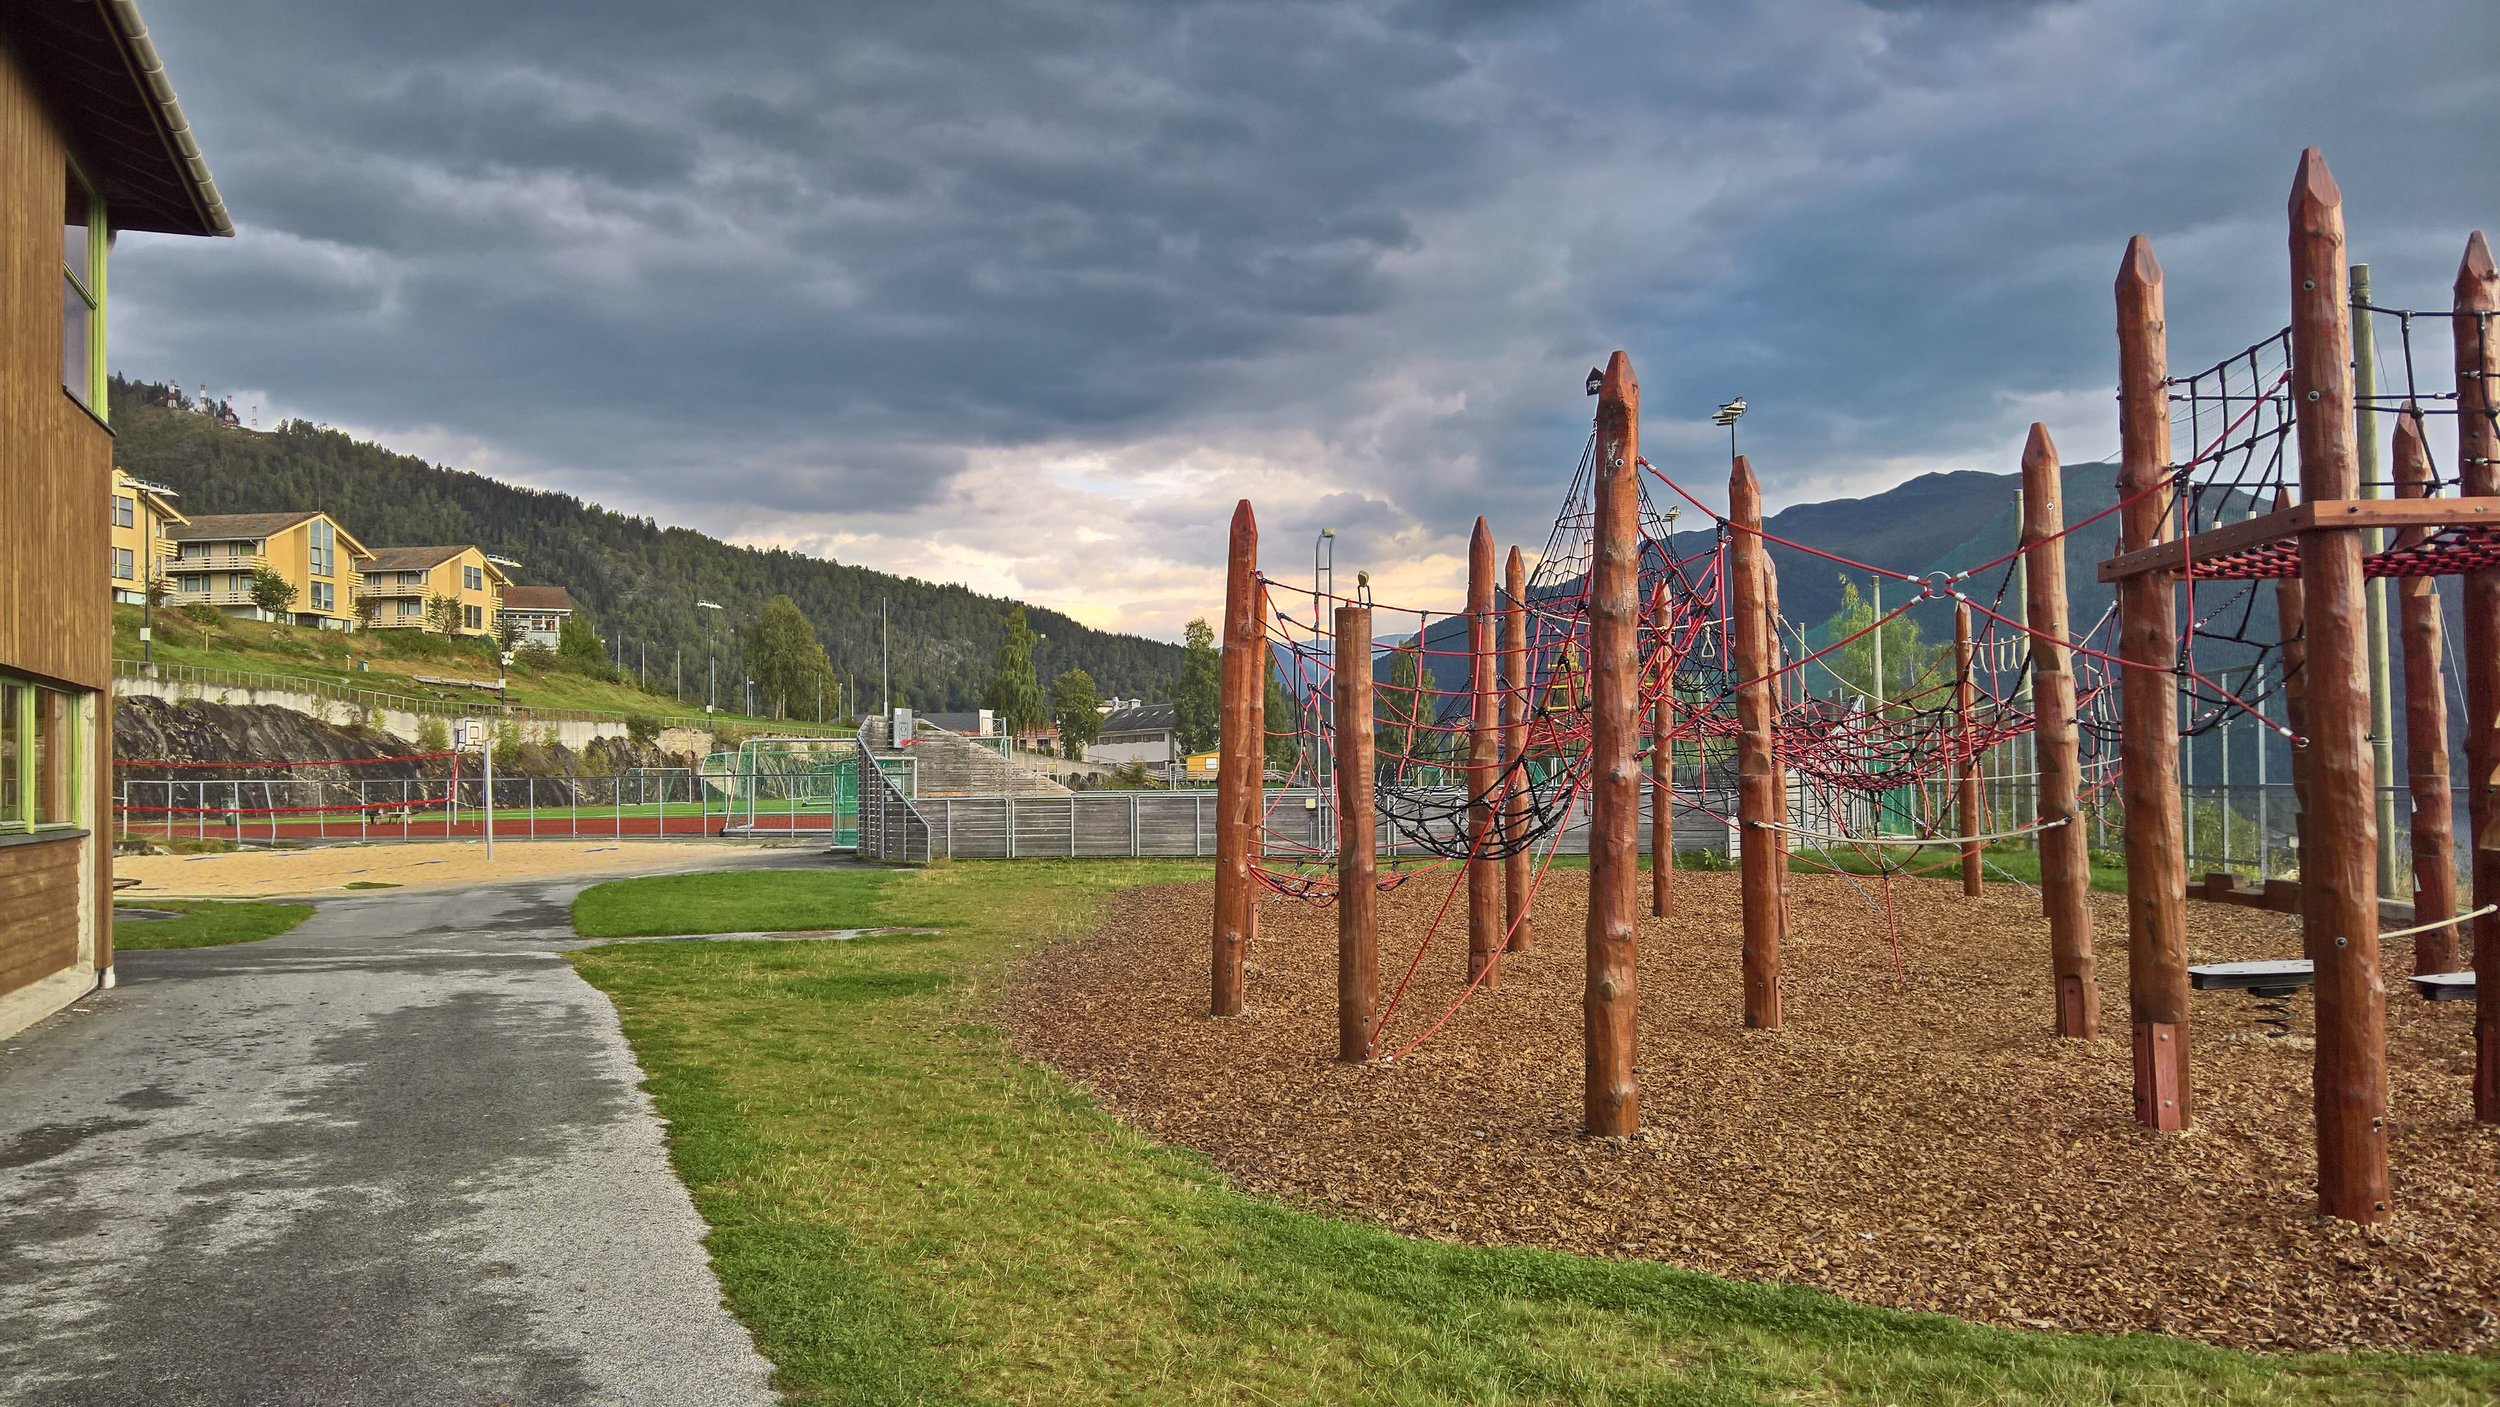 Playground by the primary school in Balestrand